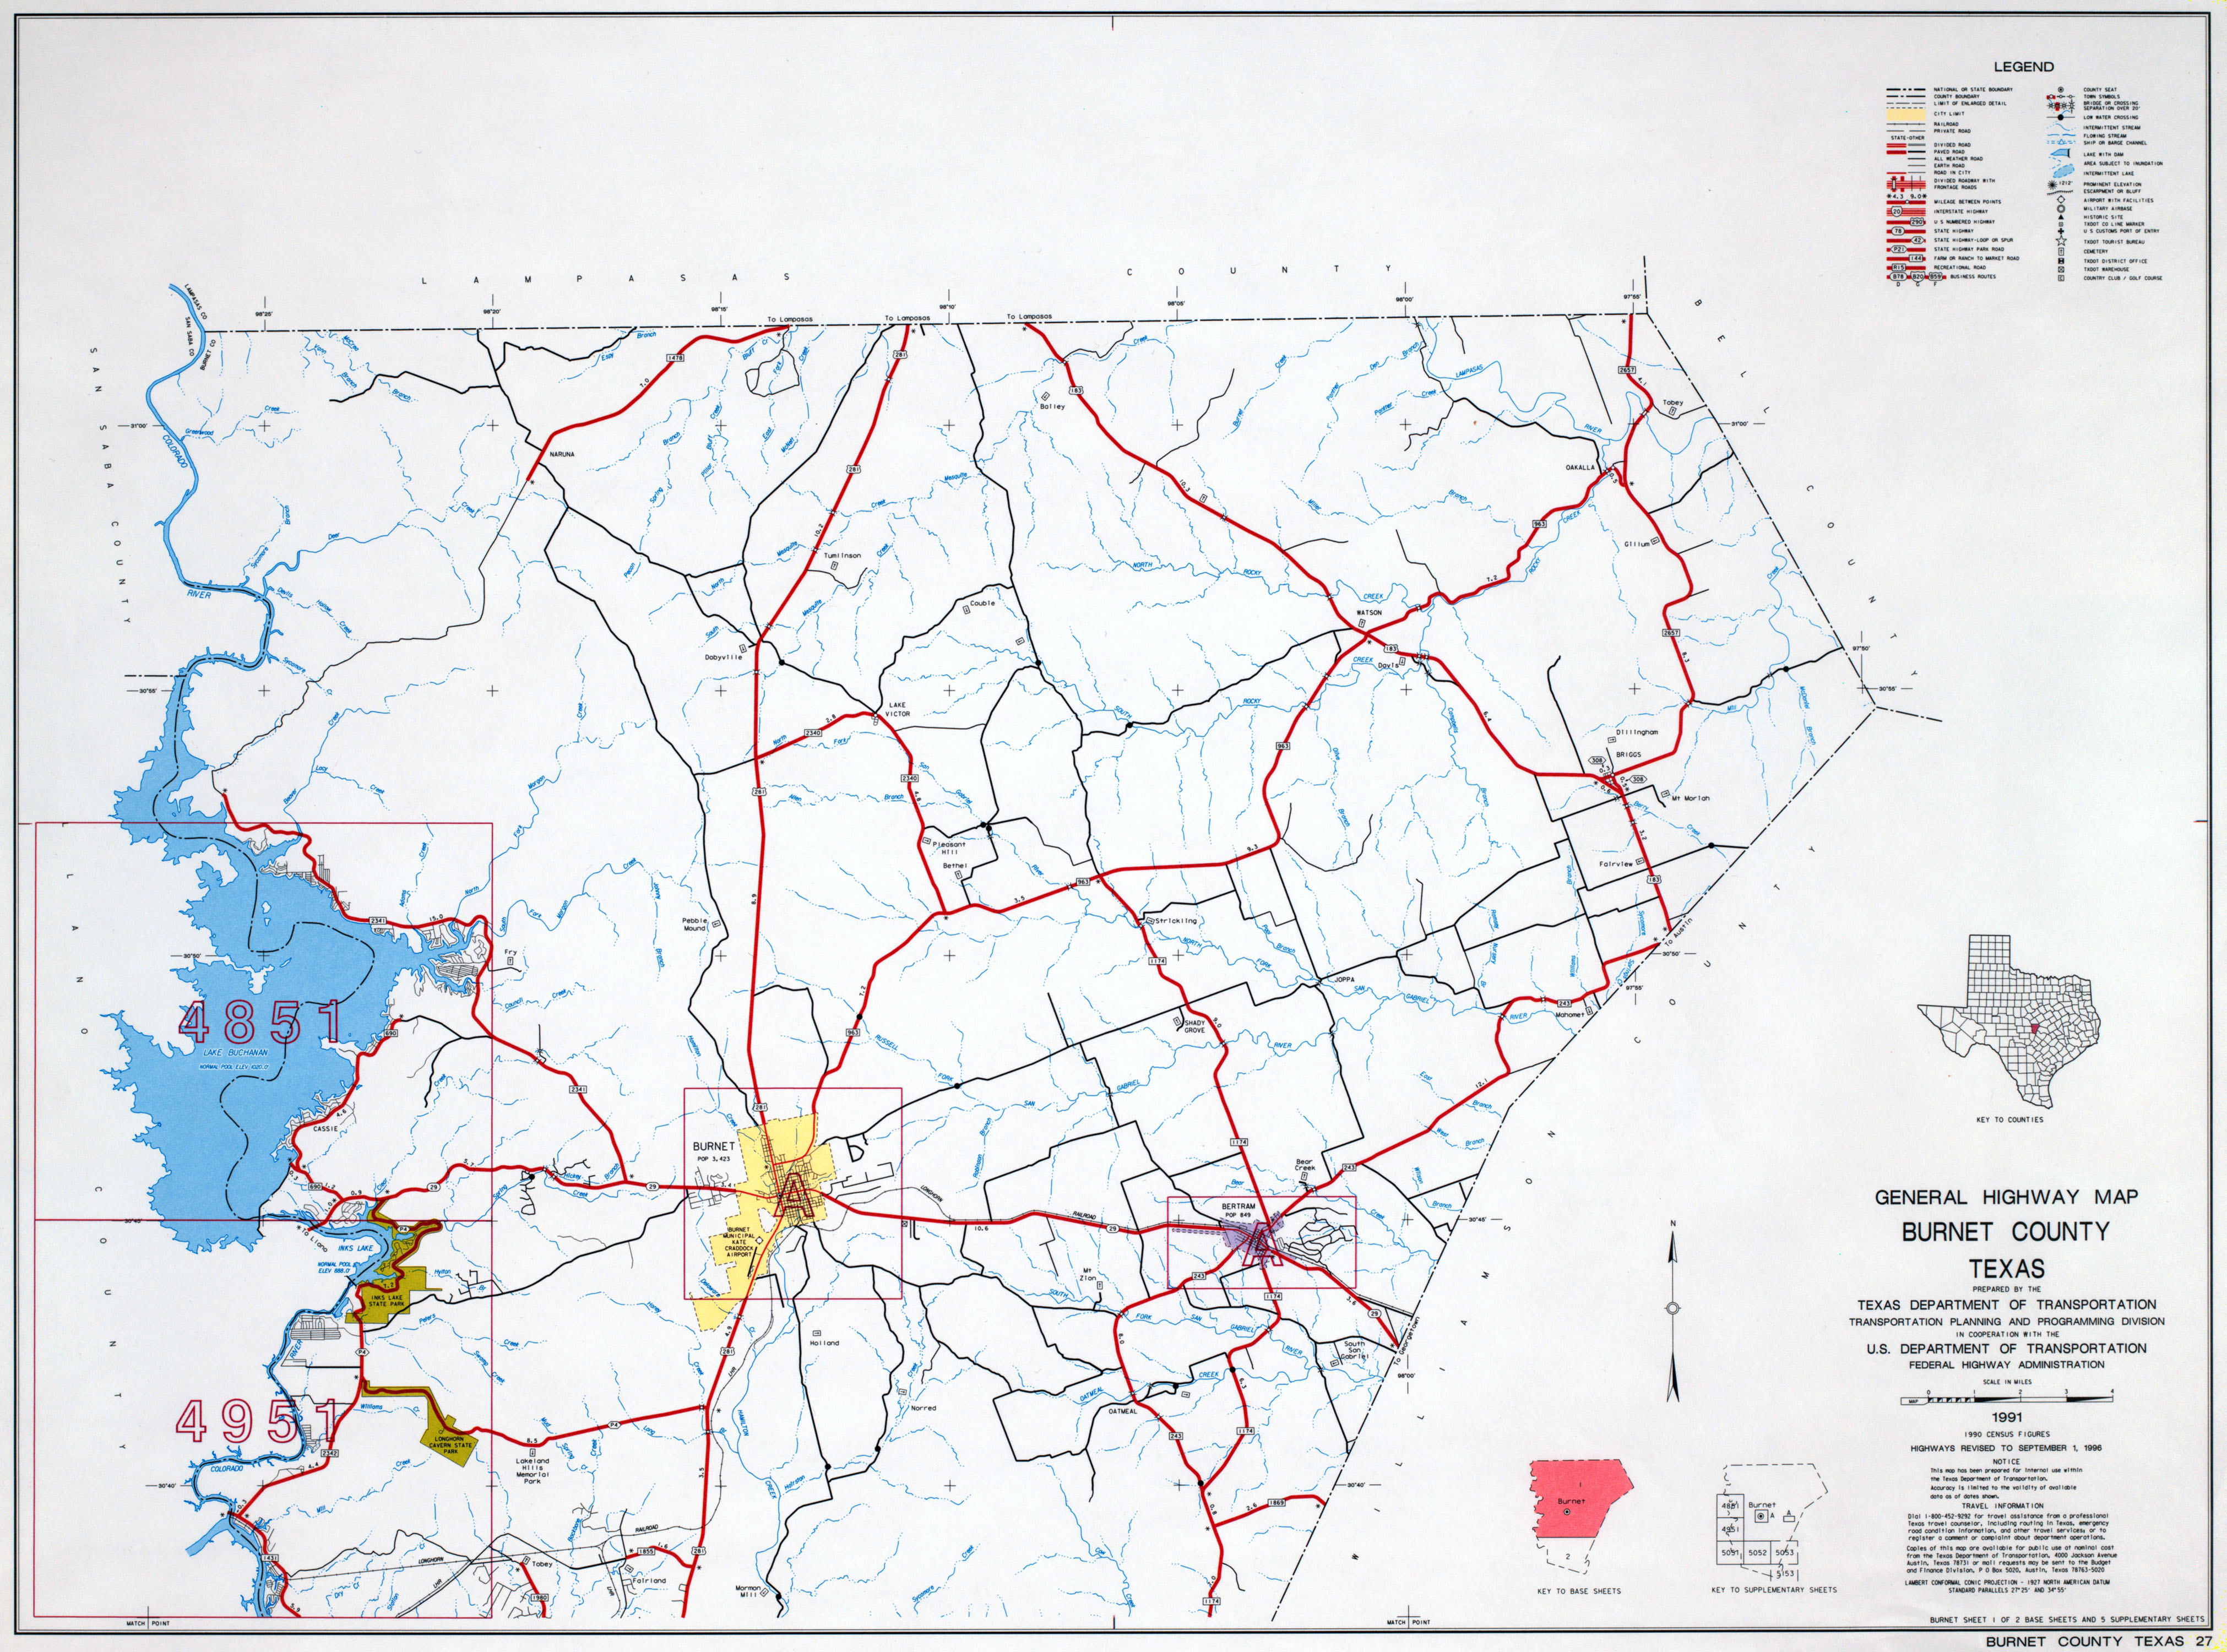 txdot road closures map with Browse on Map Of Texas Road Conditions w2fsNDku2 5vX8lVgXulR5pfJGunmIHNGmsdpFshl9E furthermore Willie Desjardins To Lead Mens Olympic Hockey Team For Canada likewise Project in addition Texas Travel Map further A Little Bump In Our Program.